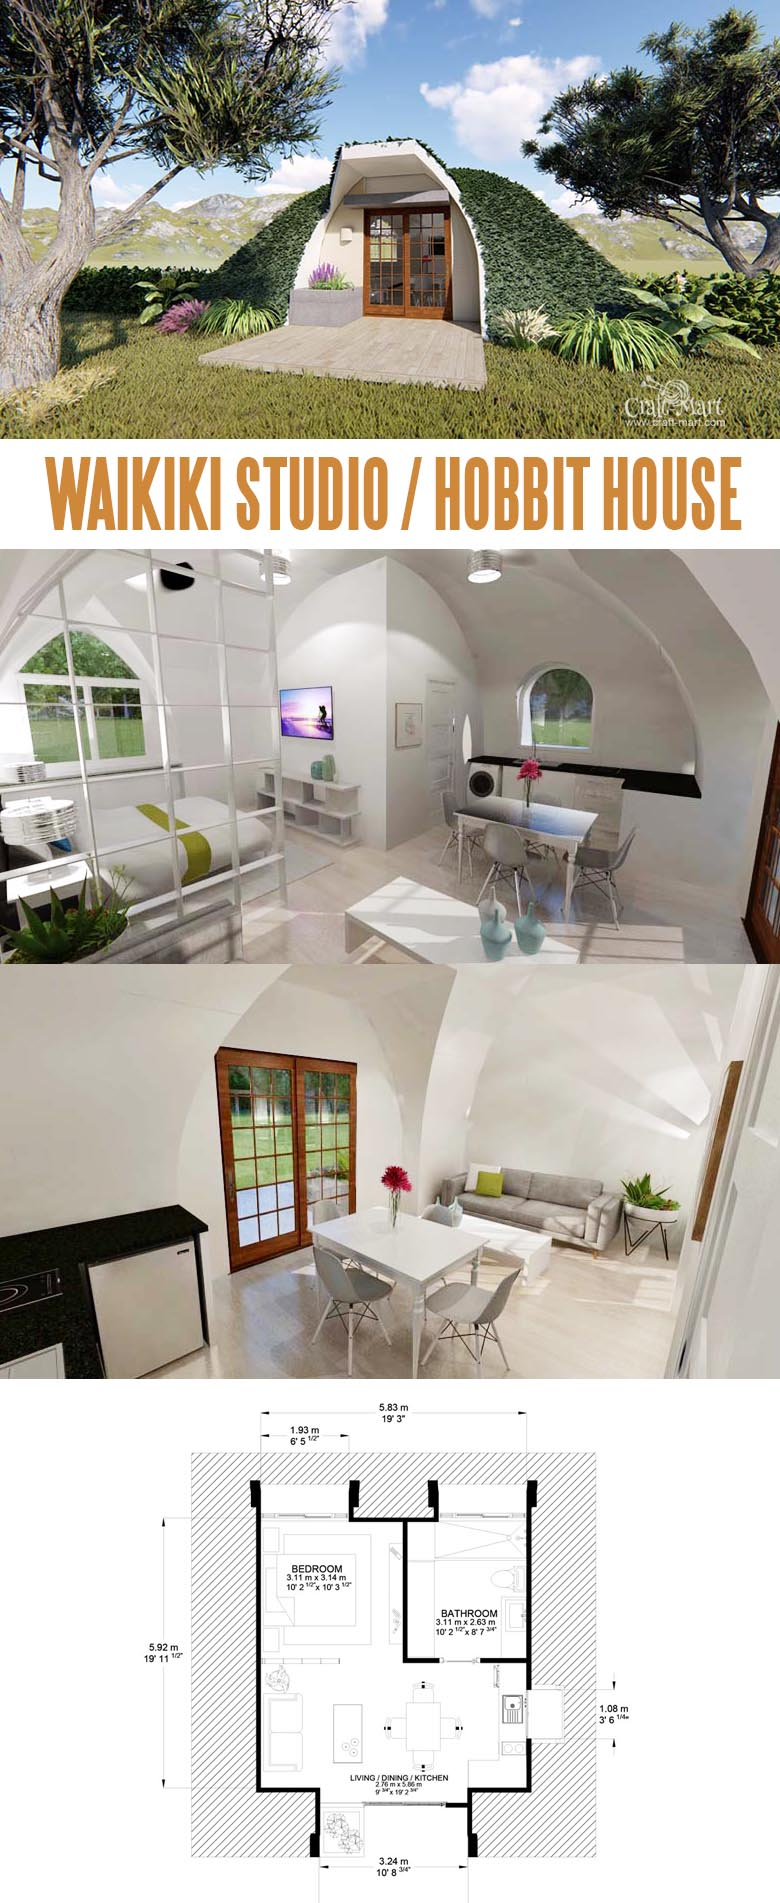 Waikiki Tiny Hobbit House. Tiny modular units can be interconnected creating luxury Hobbit estates. See the mazing line of prefabricated Hobbit-style homes that are low maintenance and energy efficient.